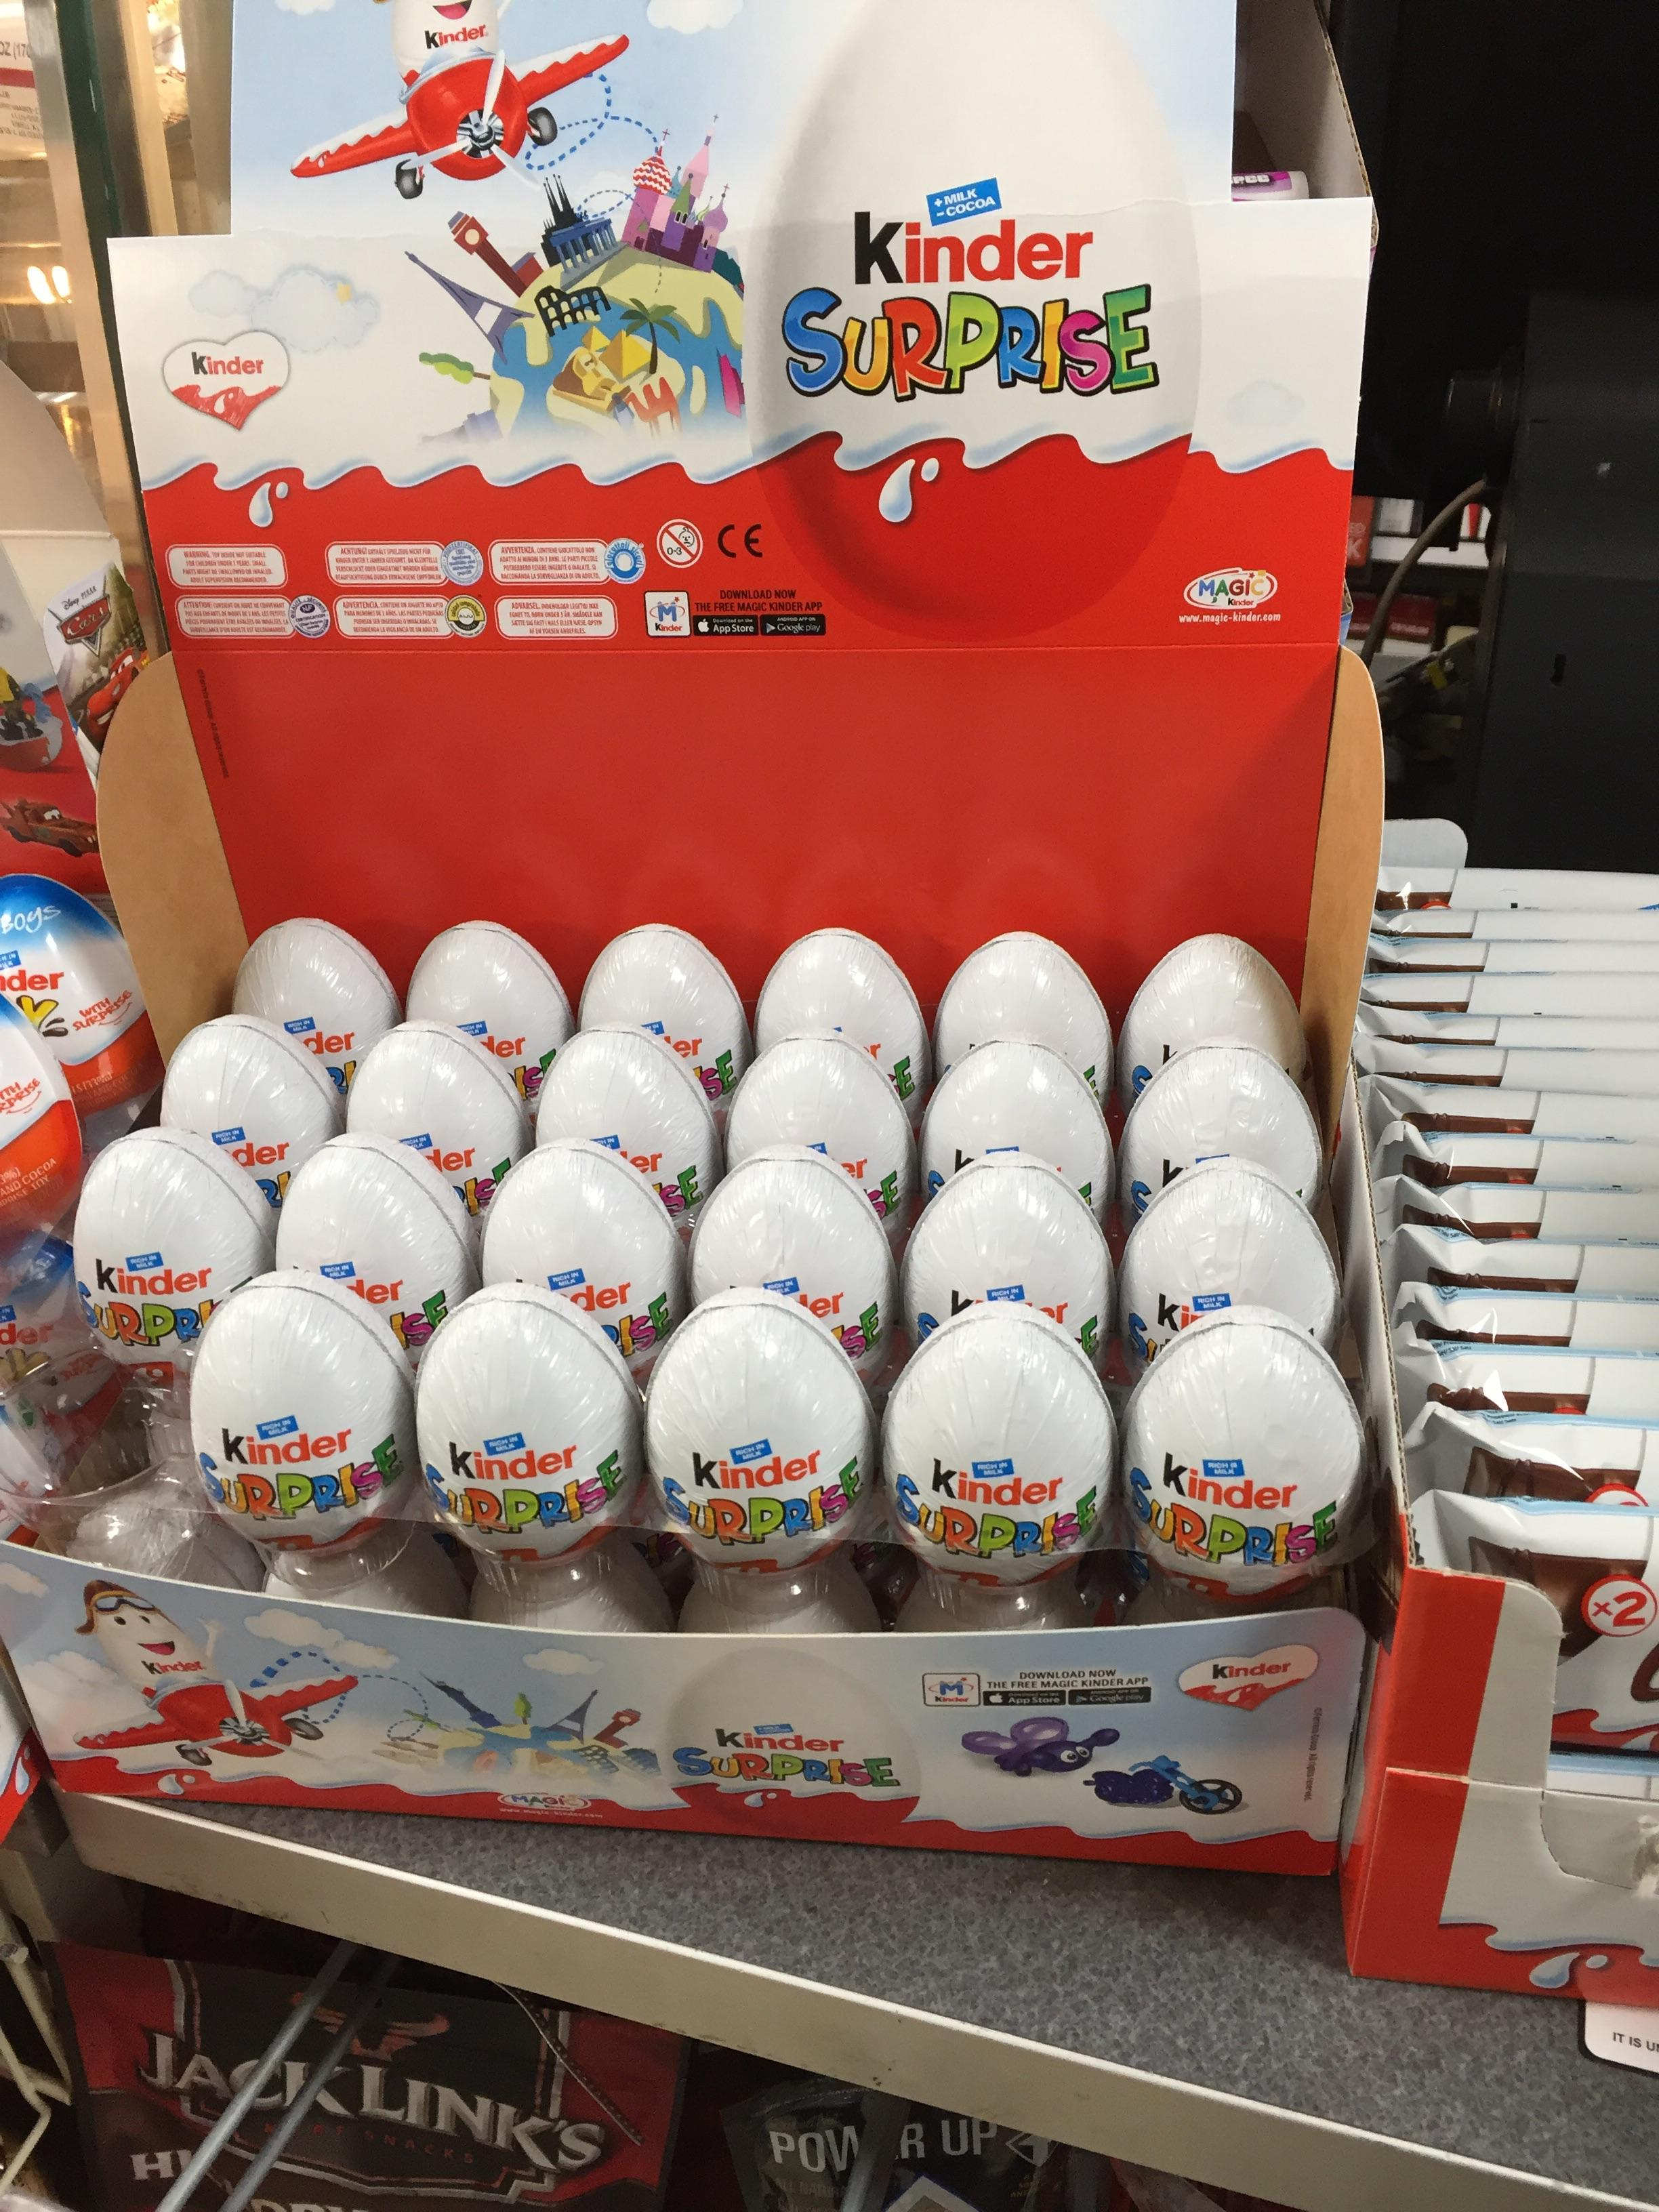 Kinder Egg Illegal My Local Convenience Carries Illegal Kinder Eggs